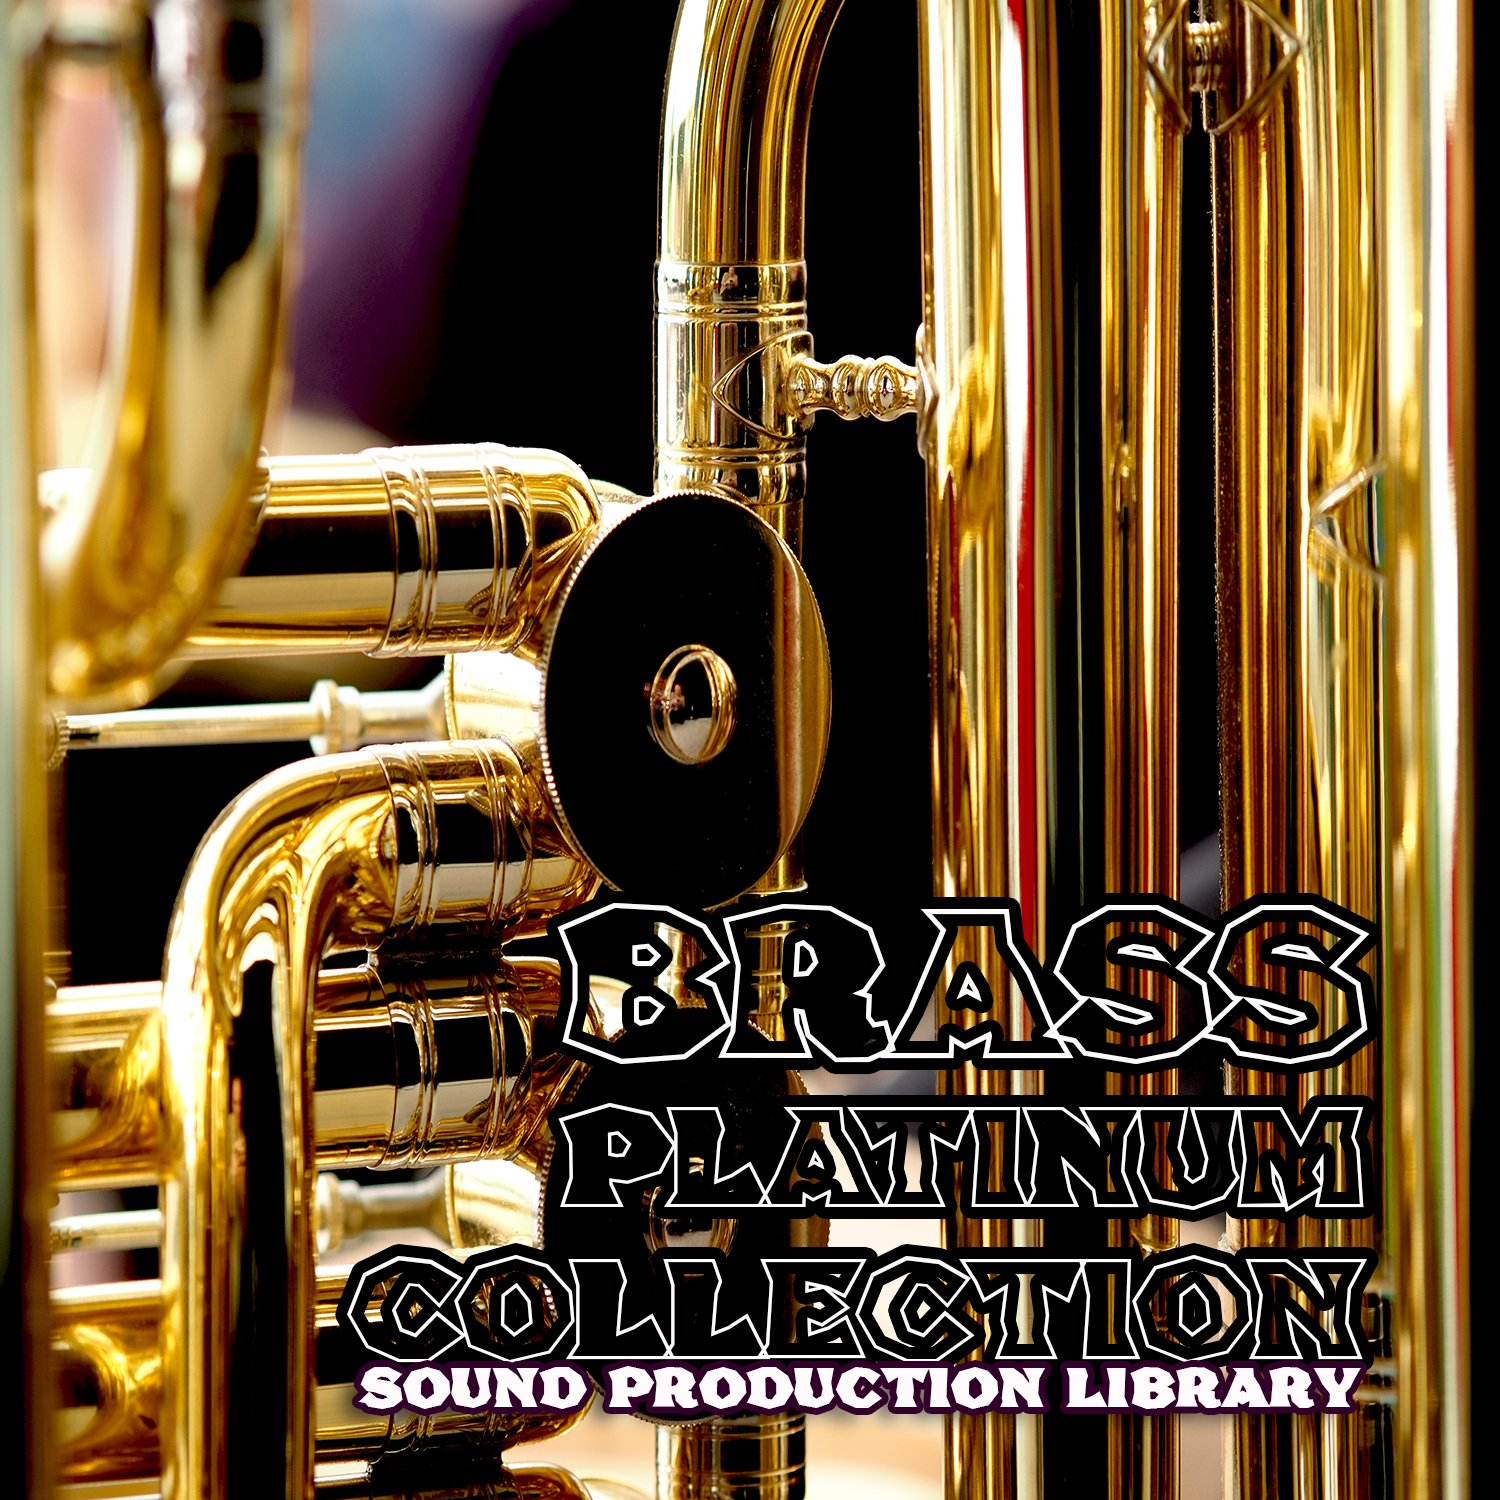 Brass Platinum Collection - Large Unique WAV/Kontakt Multi-Layer Samples Studio Library on DVD or download by SoundLoad